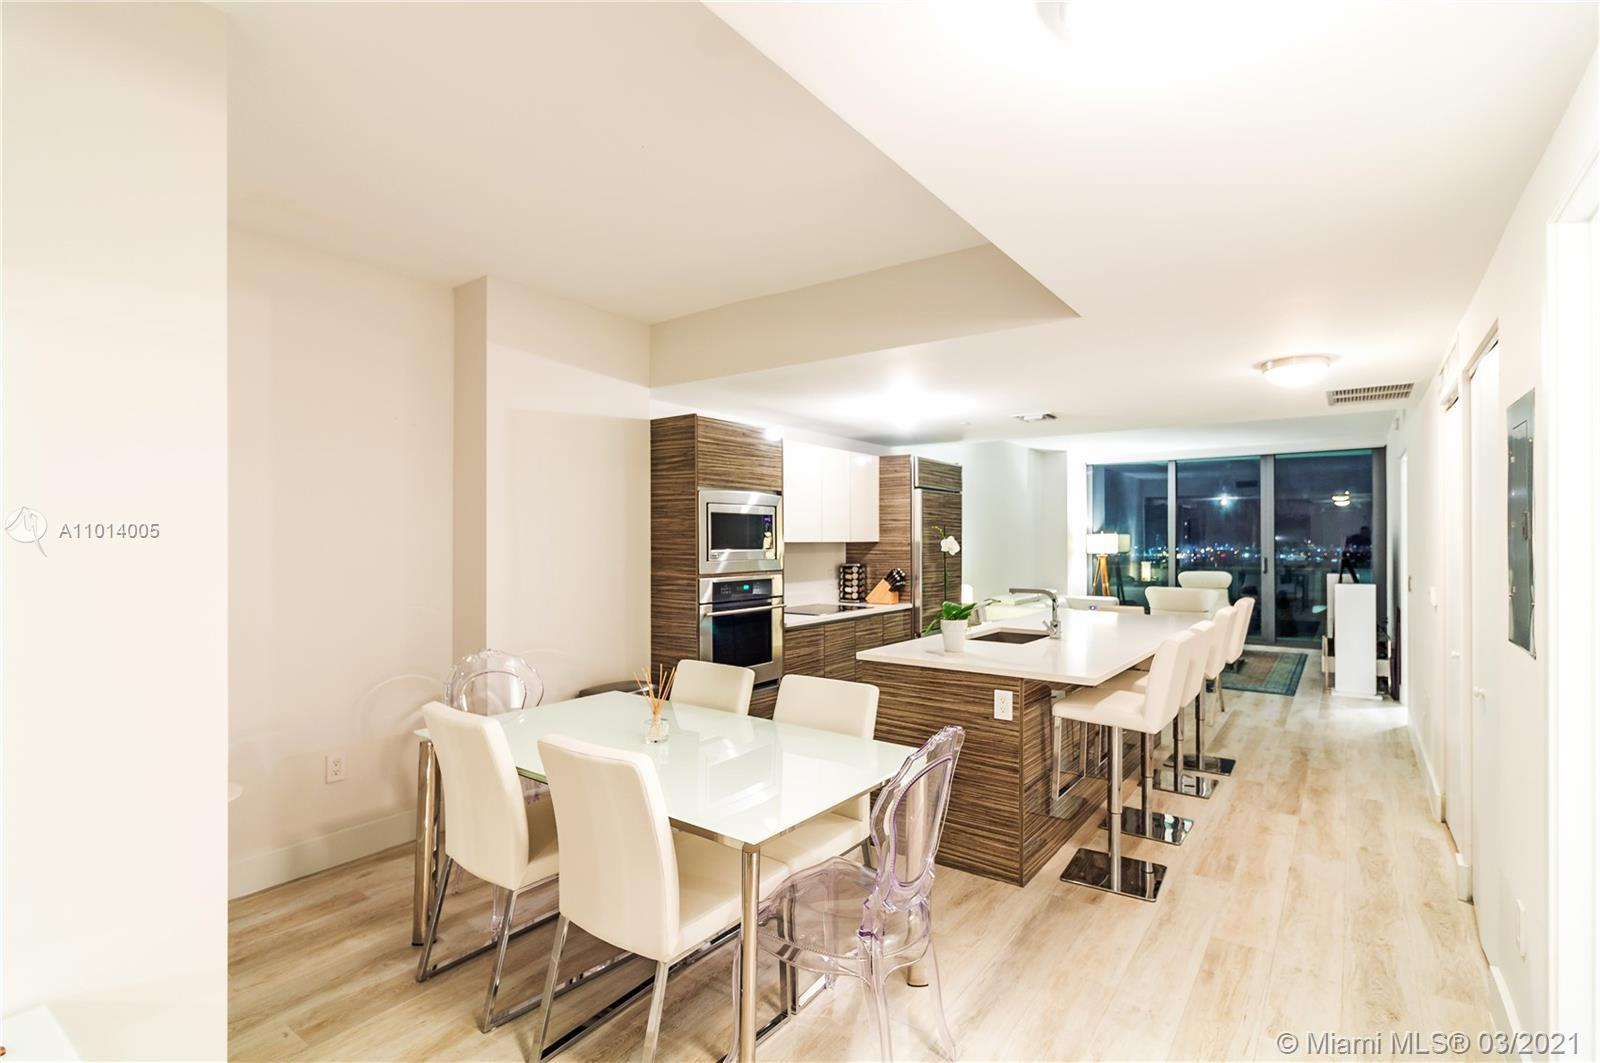 Exquisite Unit in an exclusive building in the heart of Edgewater. Modern furniture and top of the l